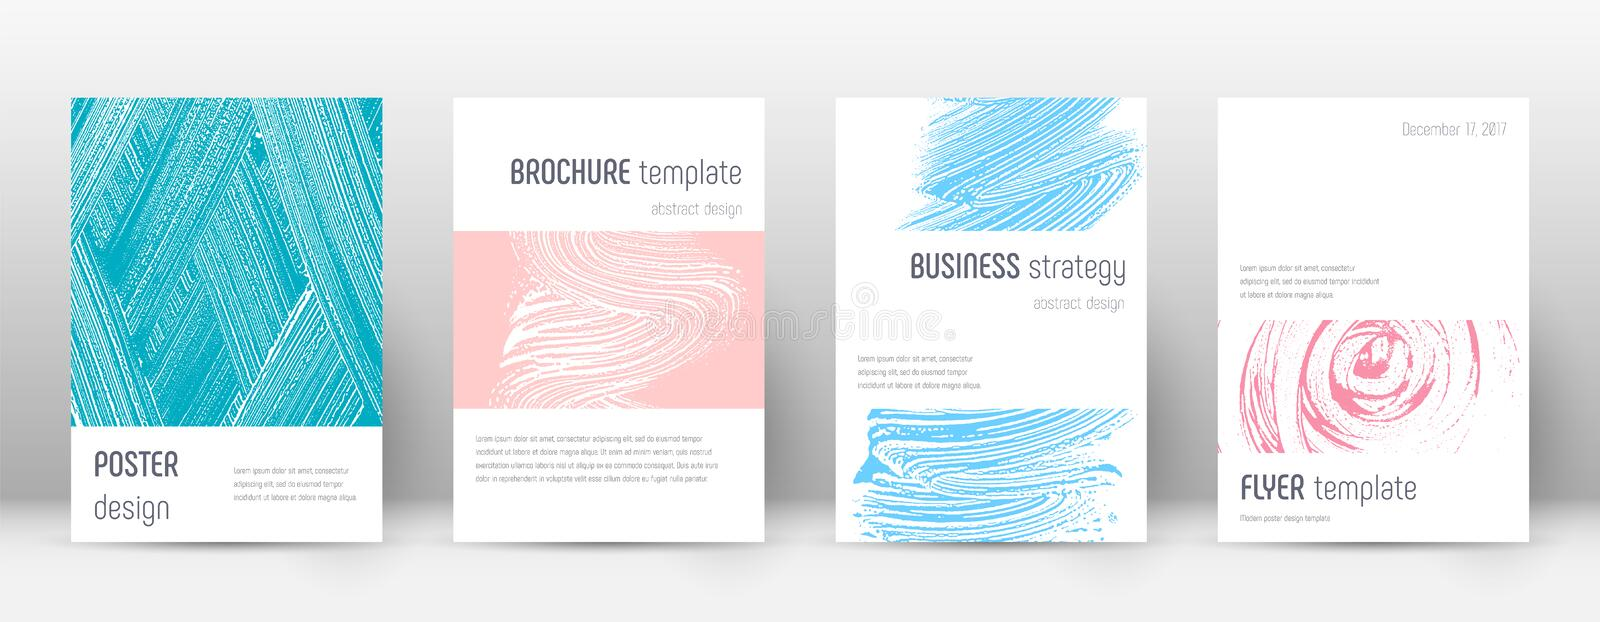 Cover page design template. Minimalistic brochure. Layout. Classy trendy abstract cover page. Pink and blue grunge texture background. Ecstatic poster vector illustration